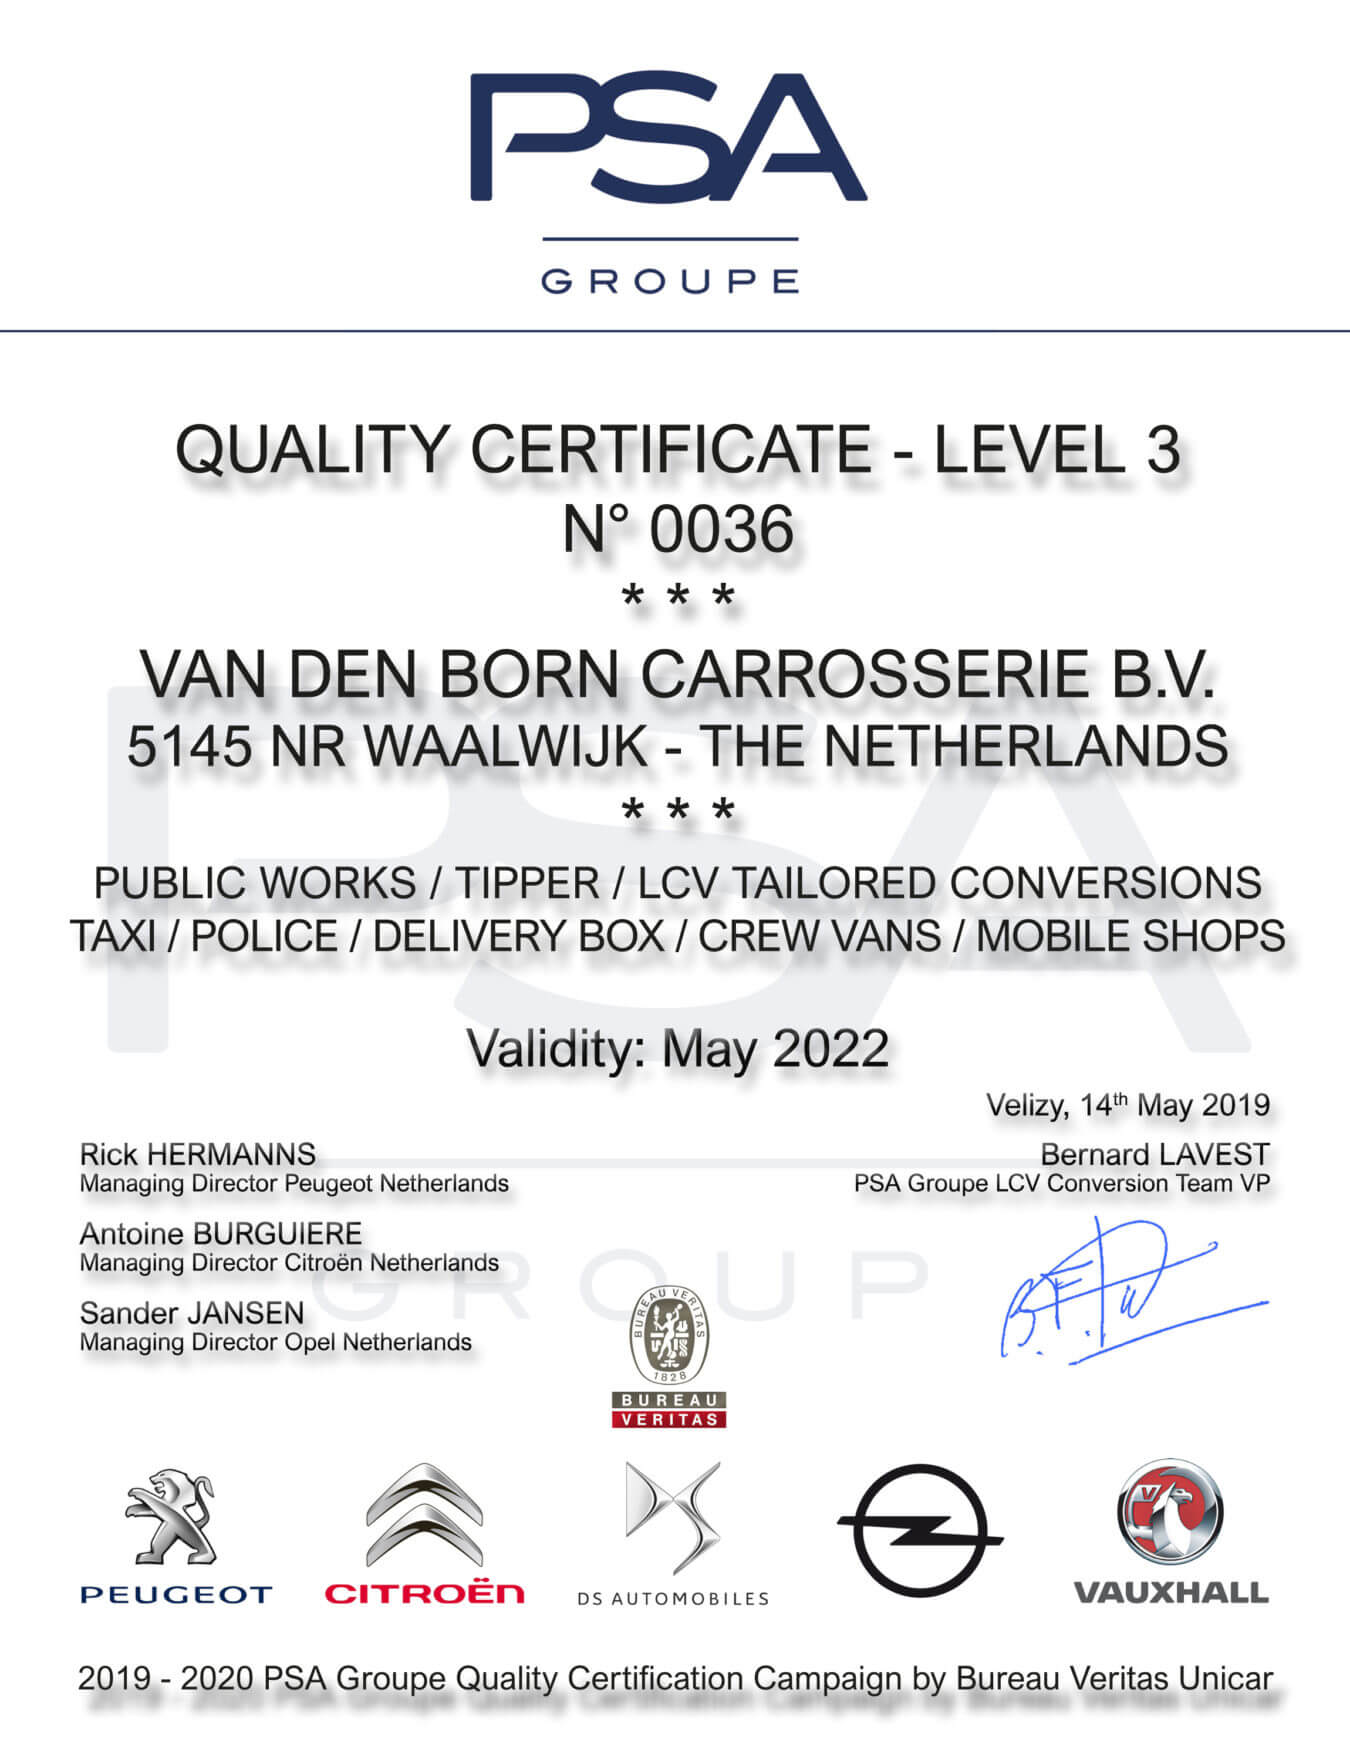 psa groupe conversion certificate